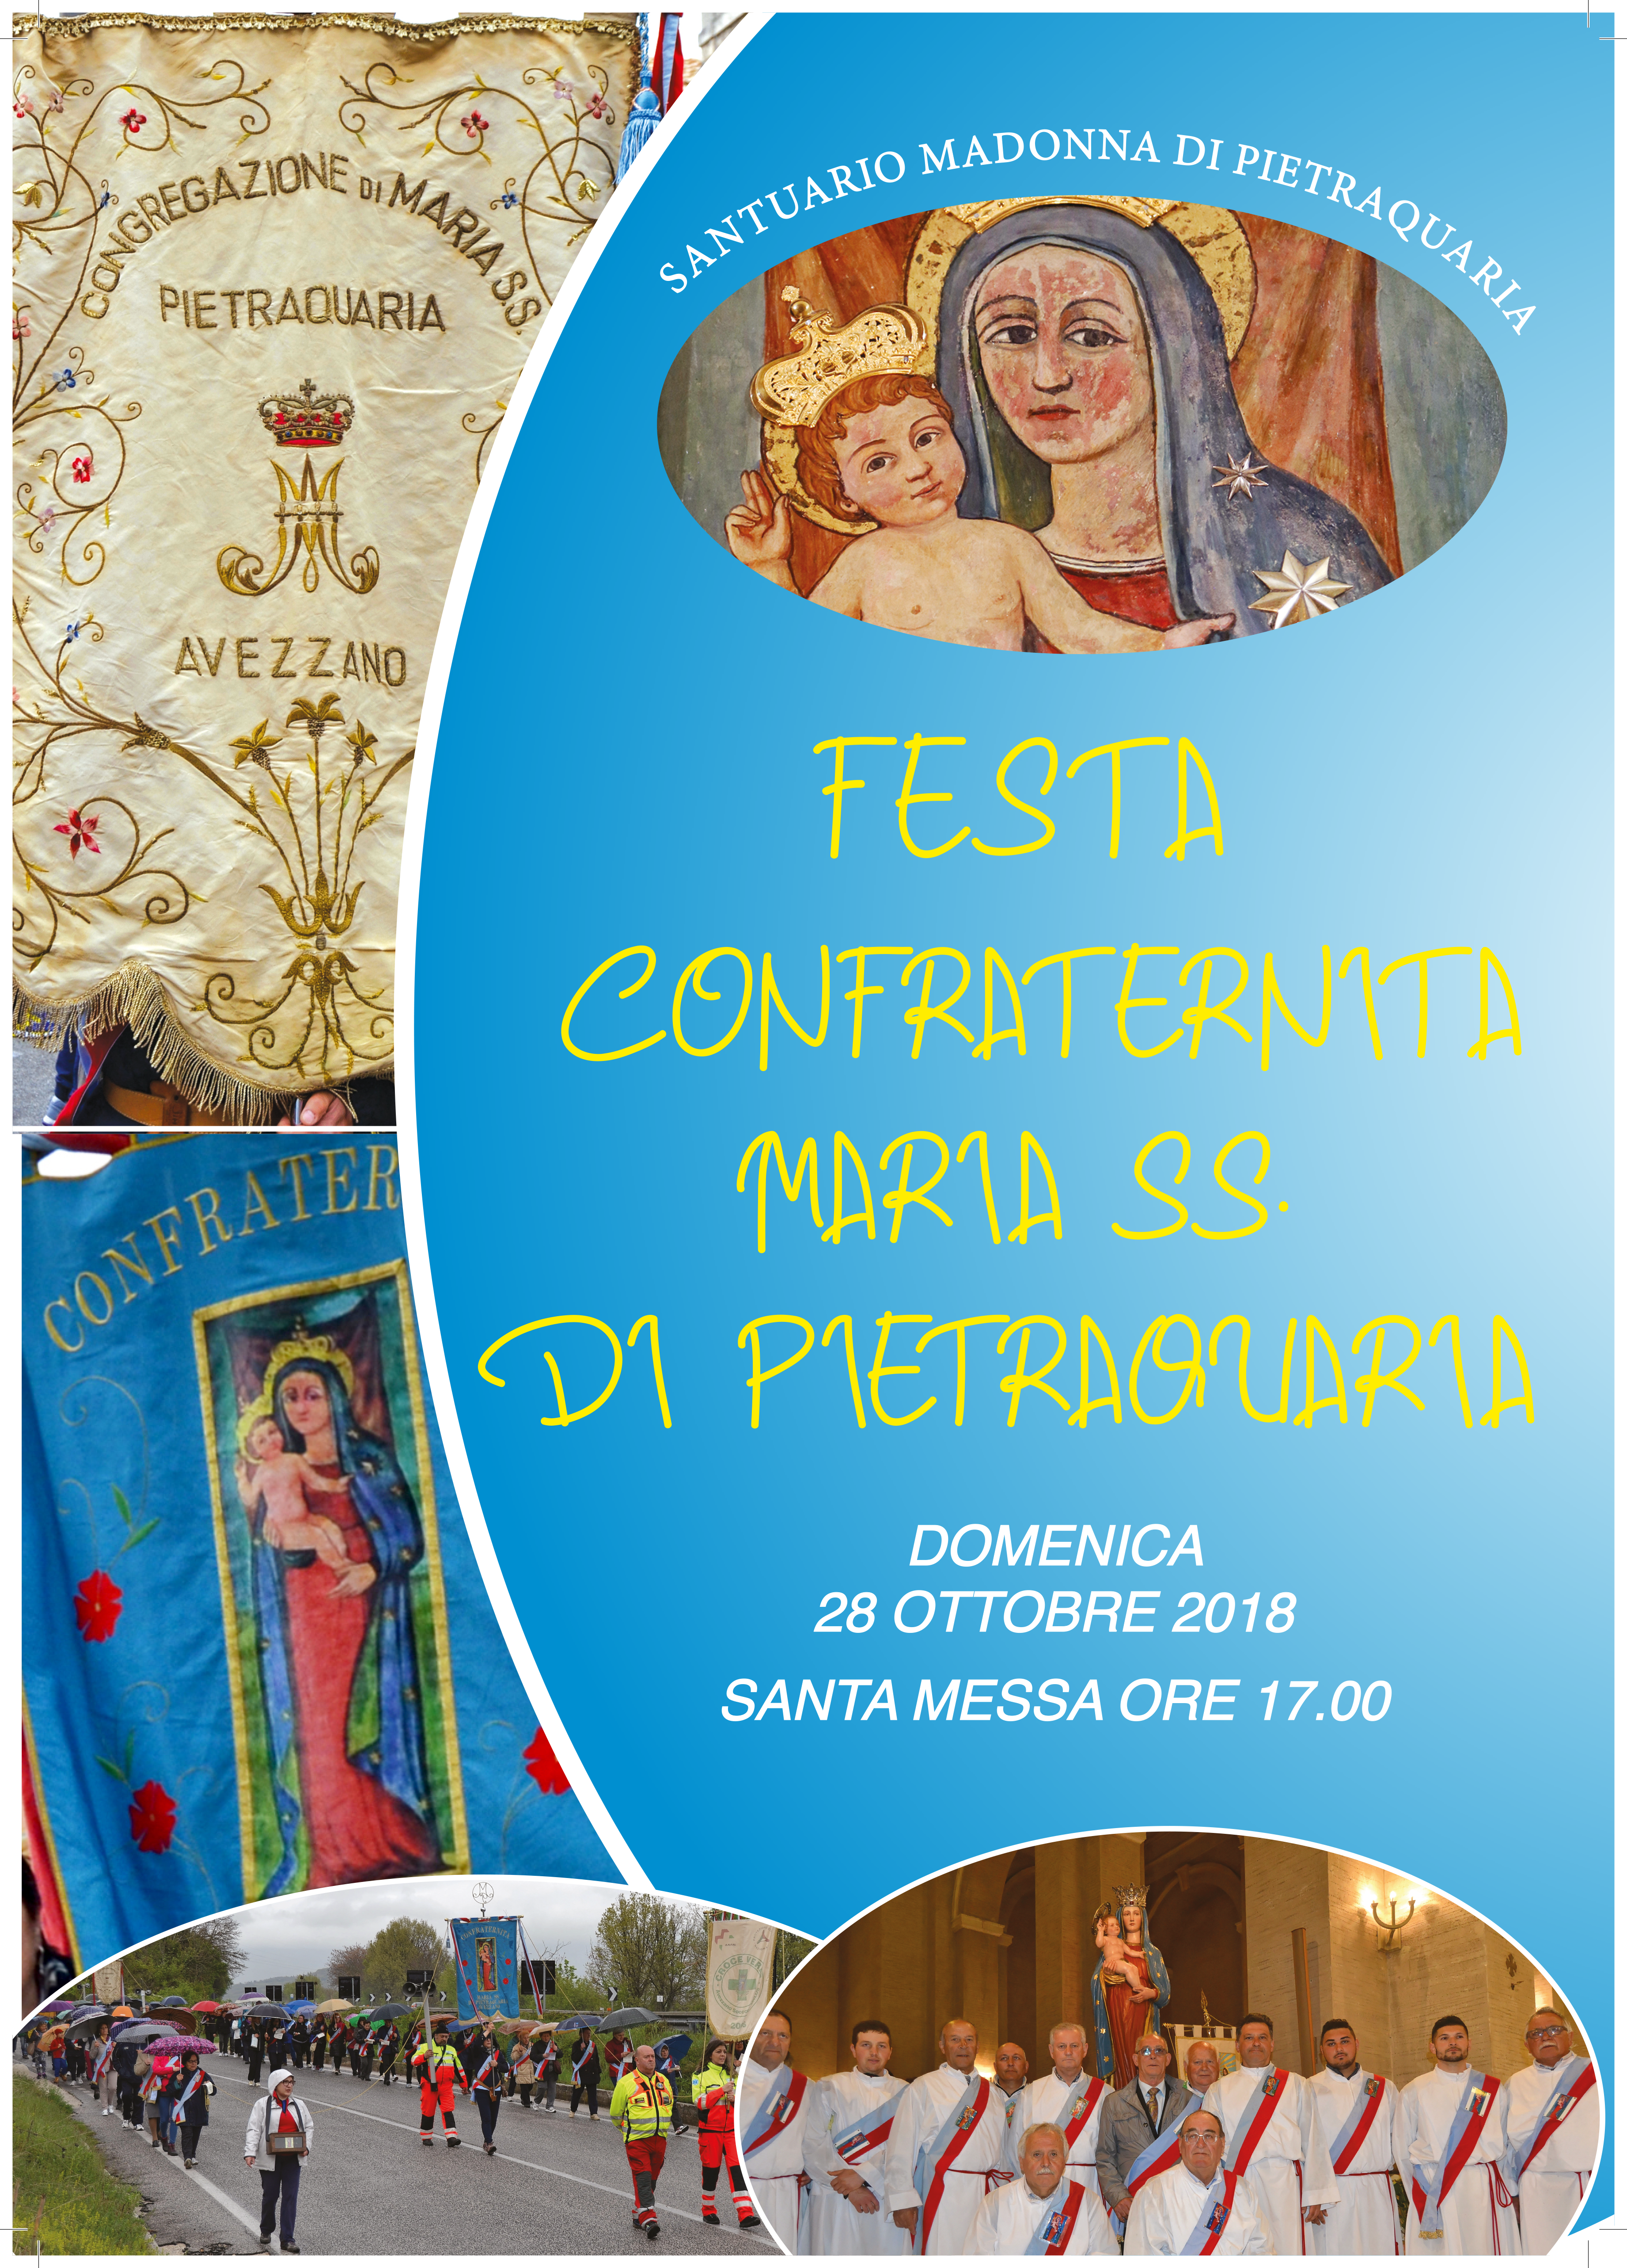 Festa Confraternita 2018